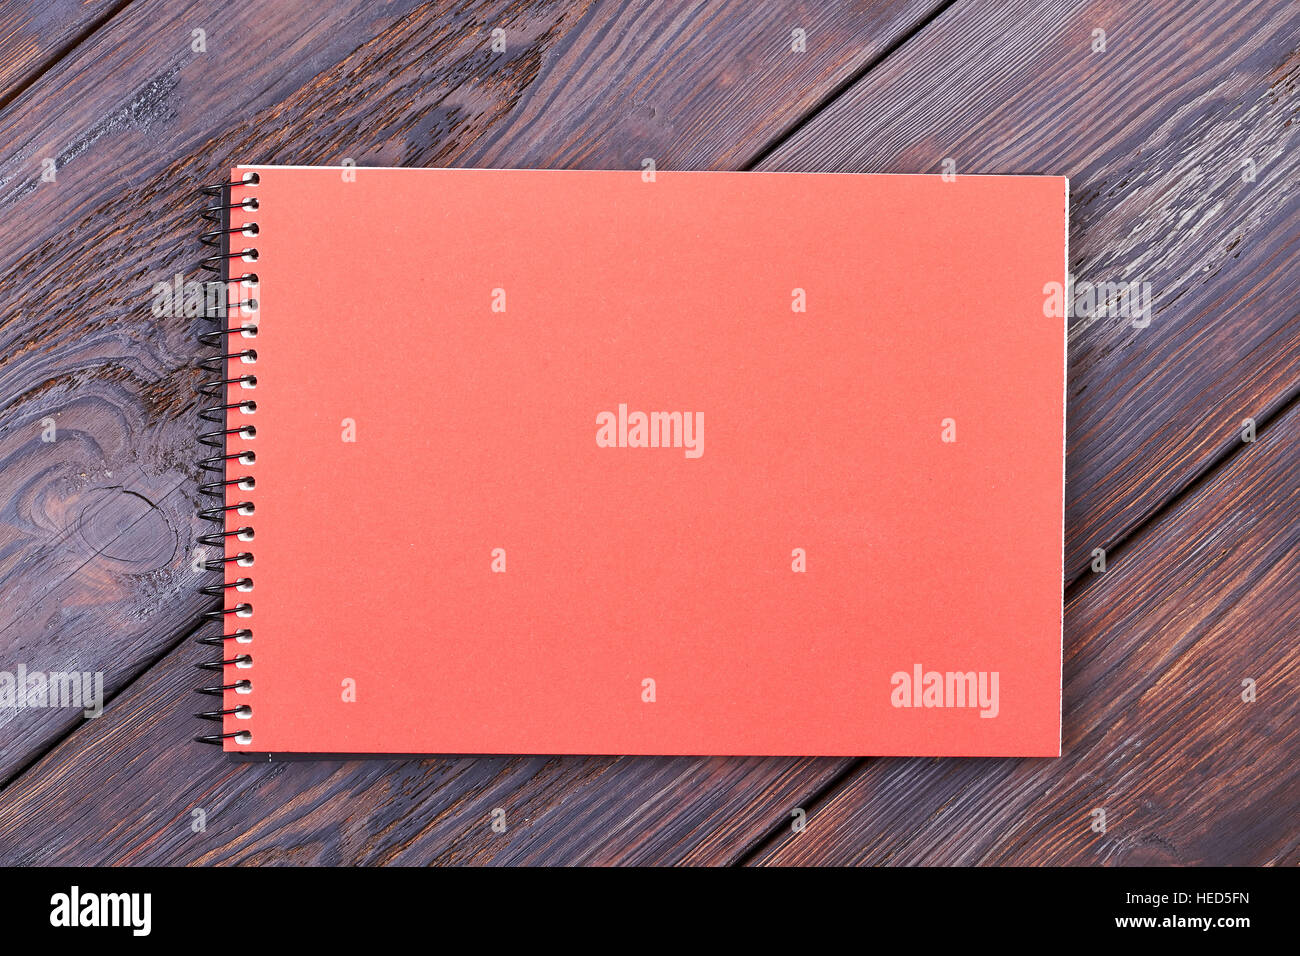 Notepad on wooden background. - Stock Image